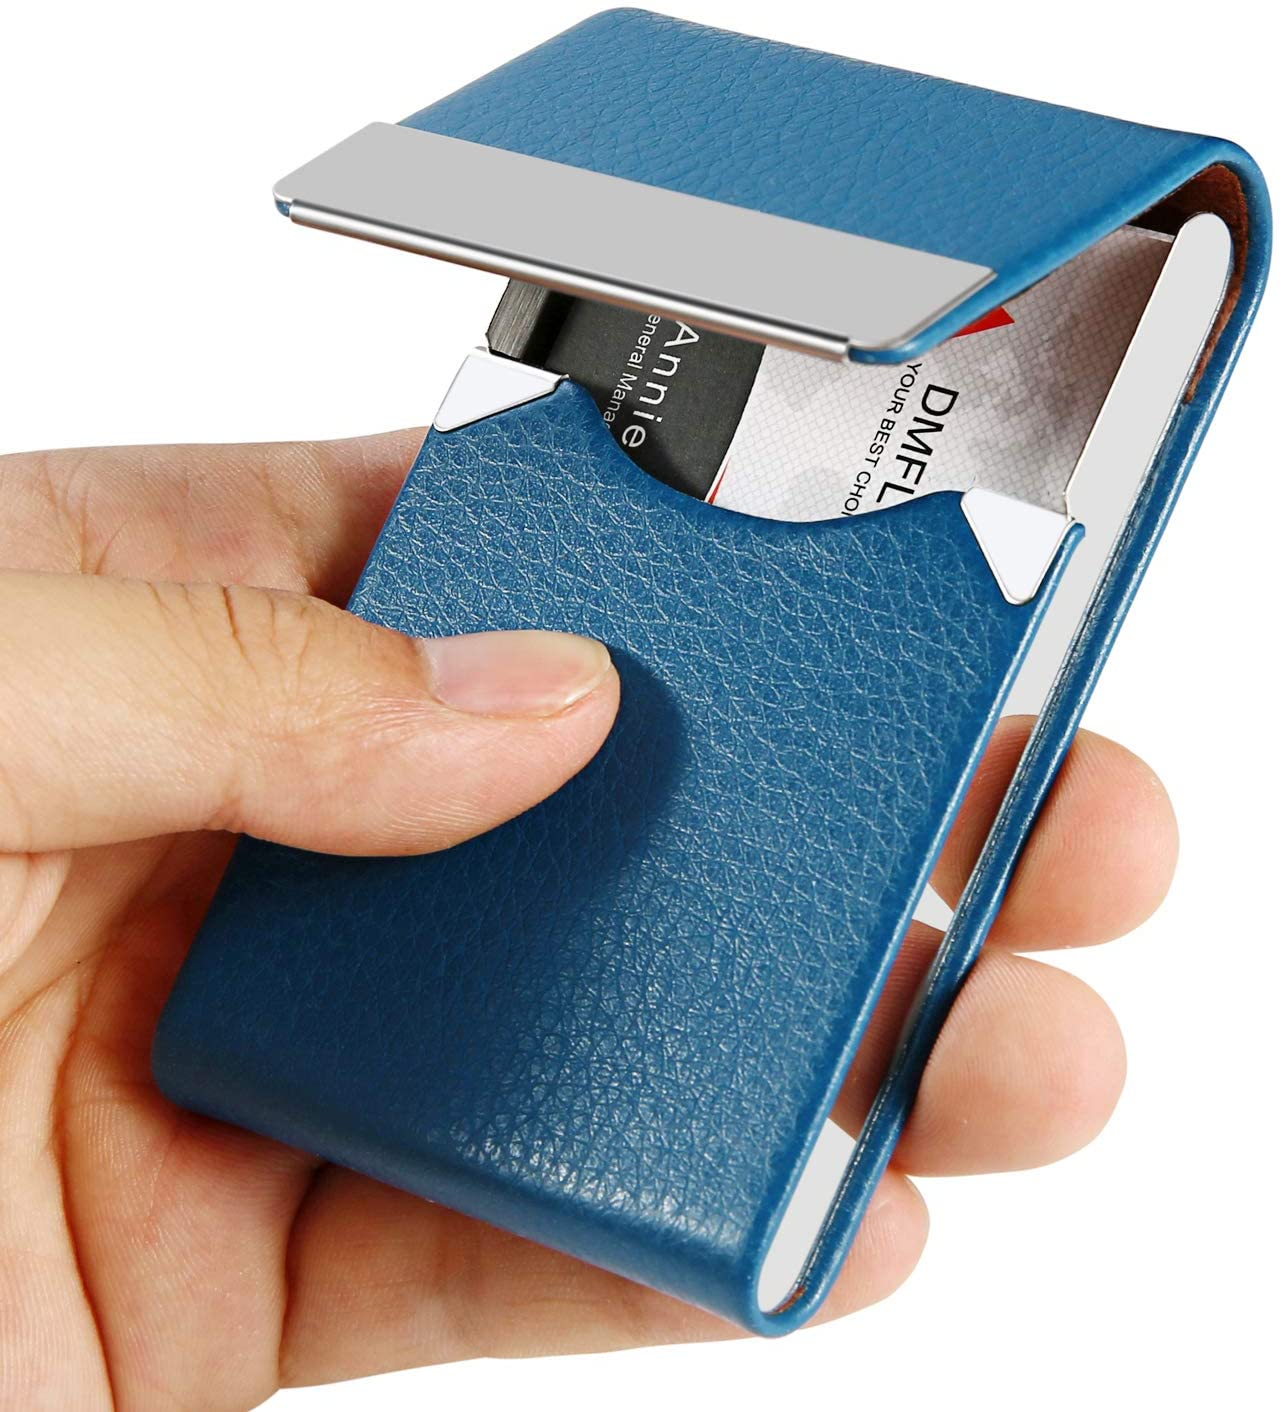 DMFLY Professional Leather Business Card Holder Metal Business Card Case Slim Business Card Wallet Name Card Holder Business Card Carrier for Men & Women, 3.7 x 2.4 x 0.5 inches, Blue